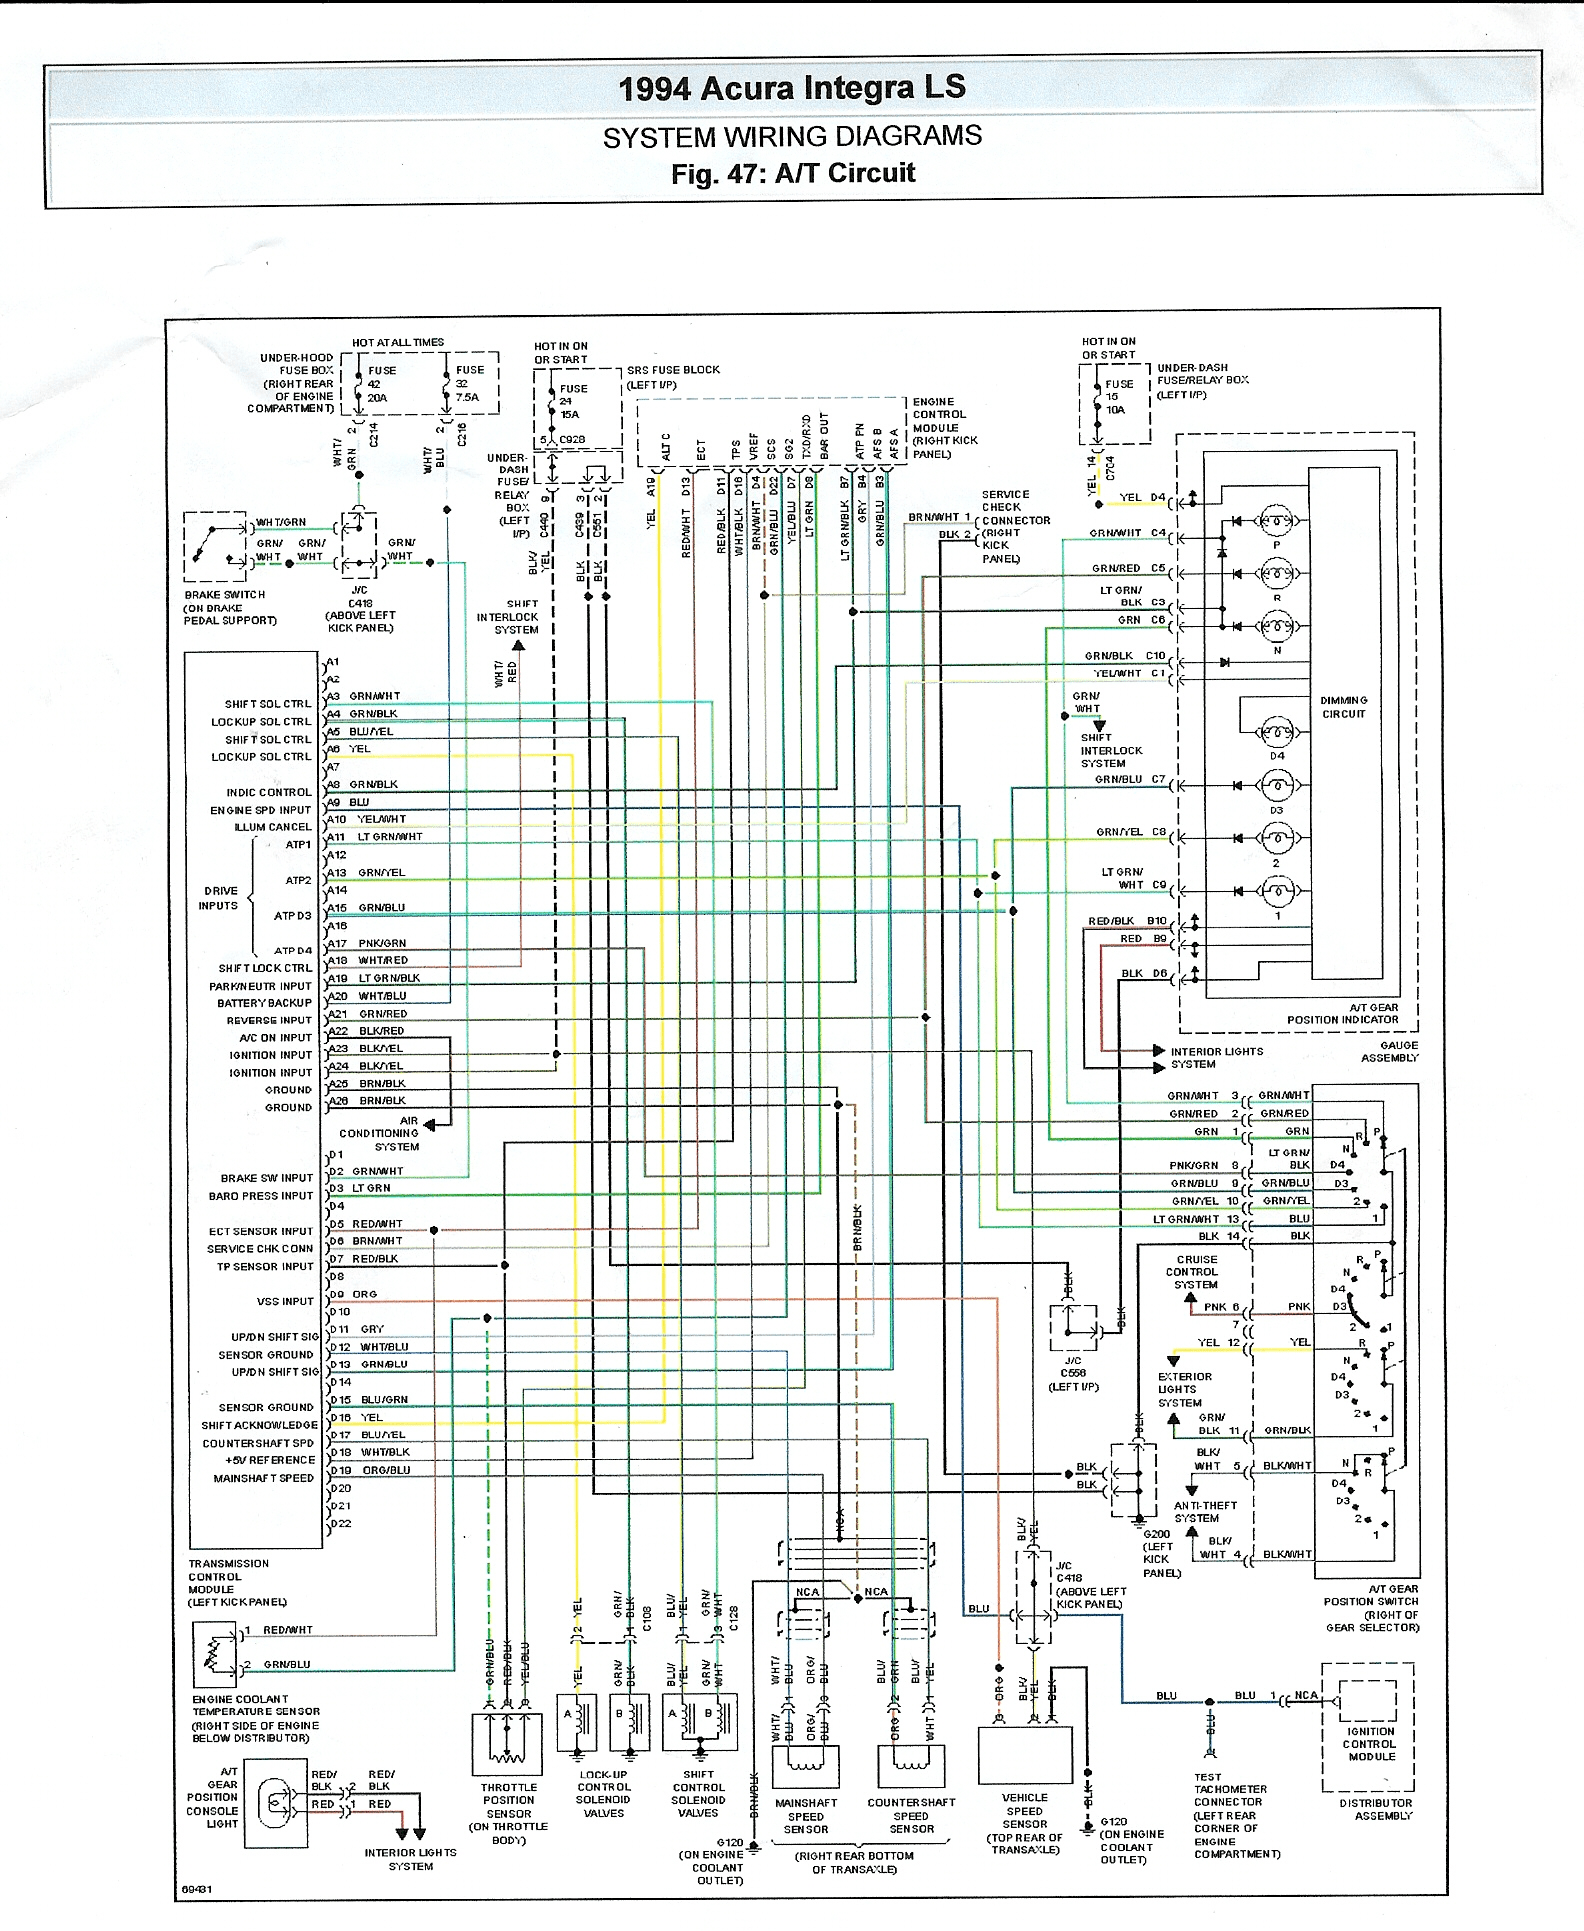 integra wiring diagram wiring diagram for you 2000 acura integra integra gsr wiring harness diagram [ 1584 x 1931 Pixel ]